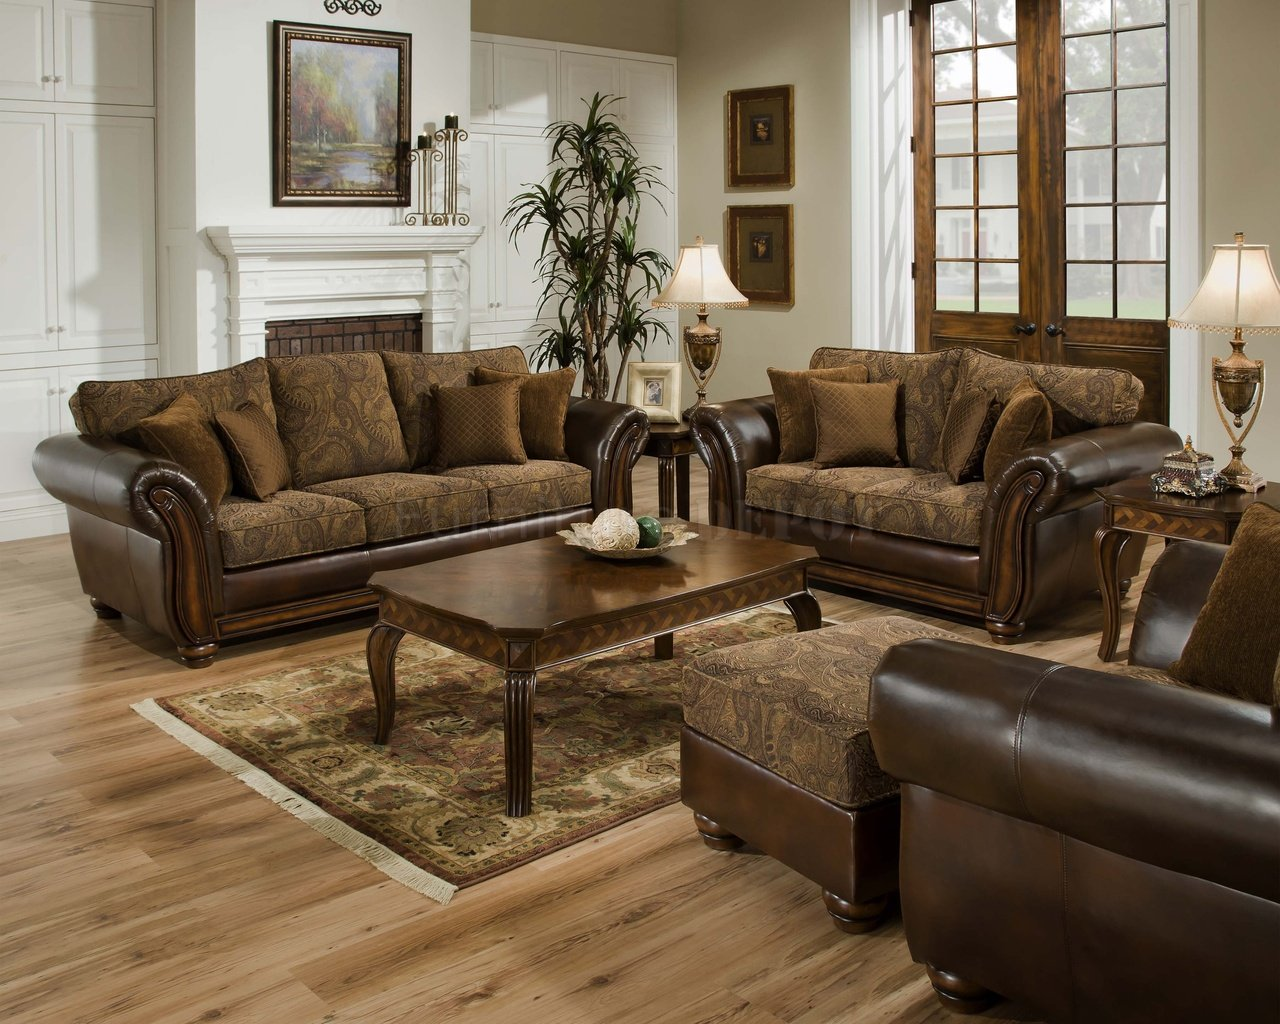 Unique Pattern And Leather Design Of Couch Loveseat Sets With Ottoman Wooden Table Plus